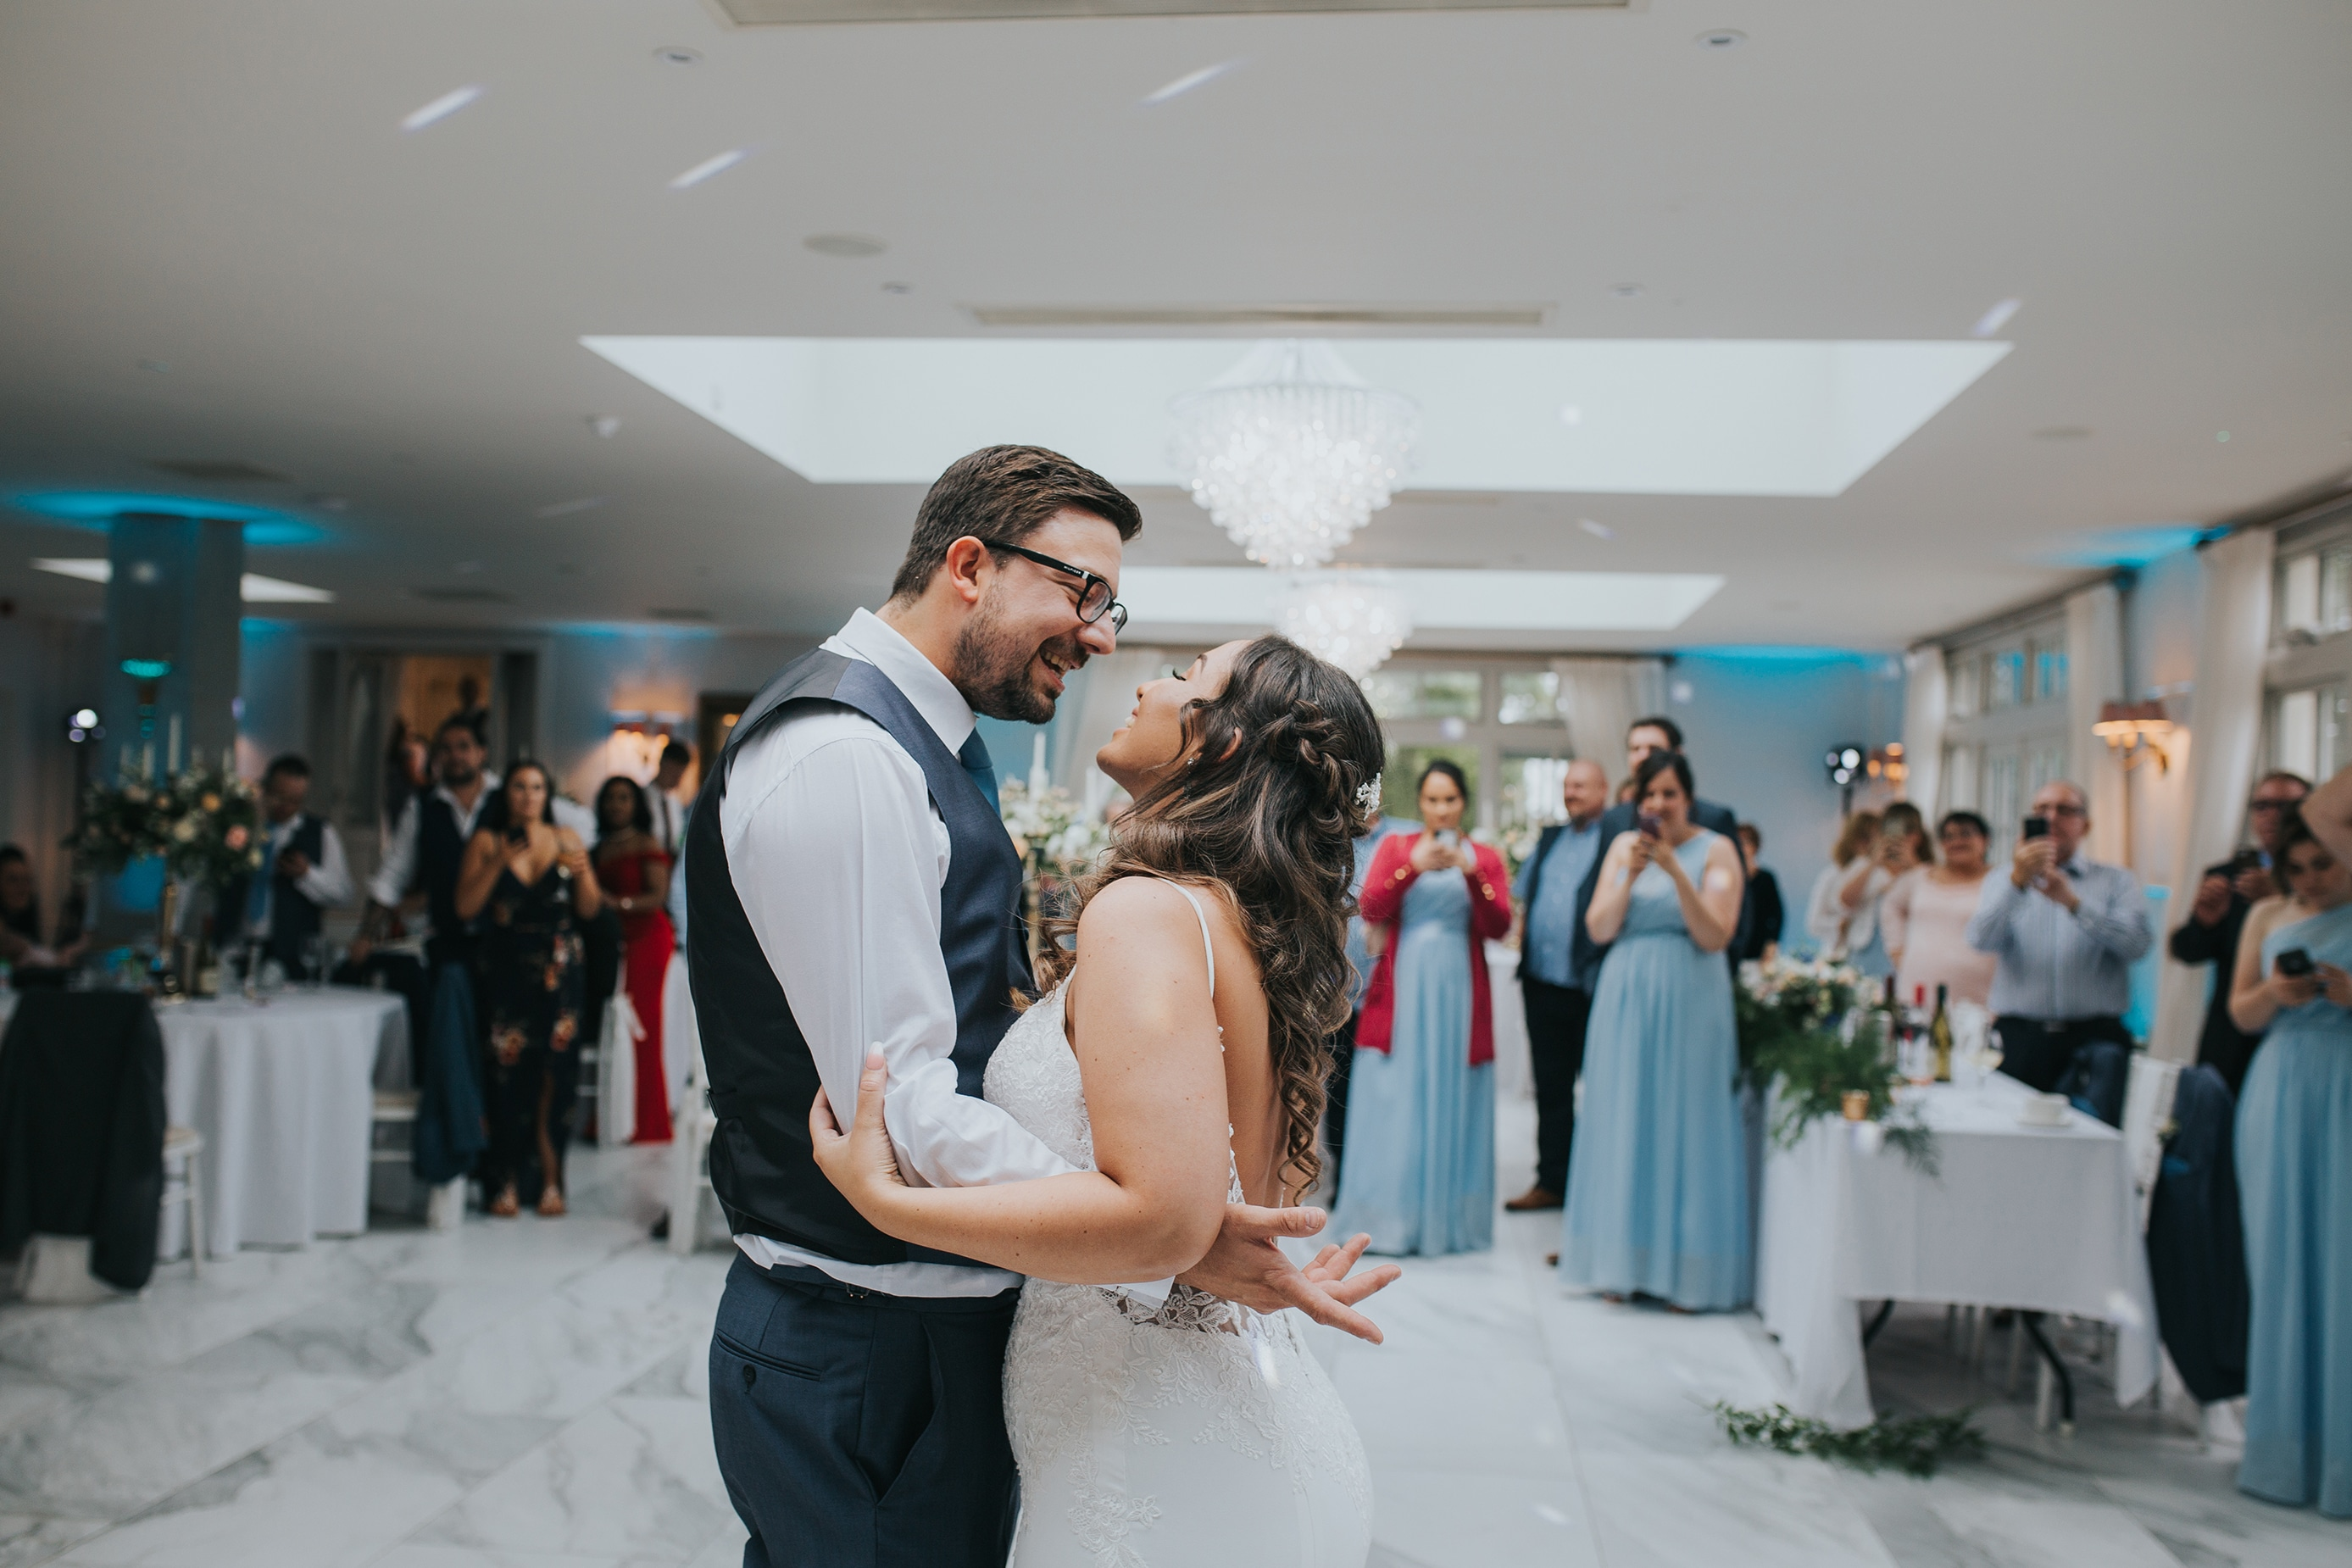 First Dance Photograph at Lemore Manor in Hereford